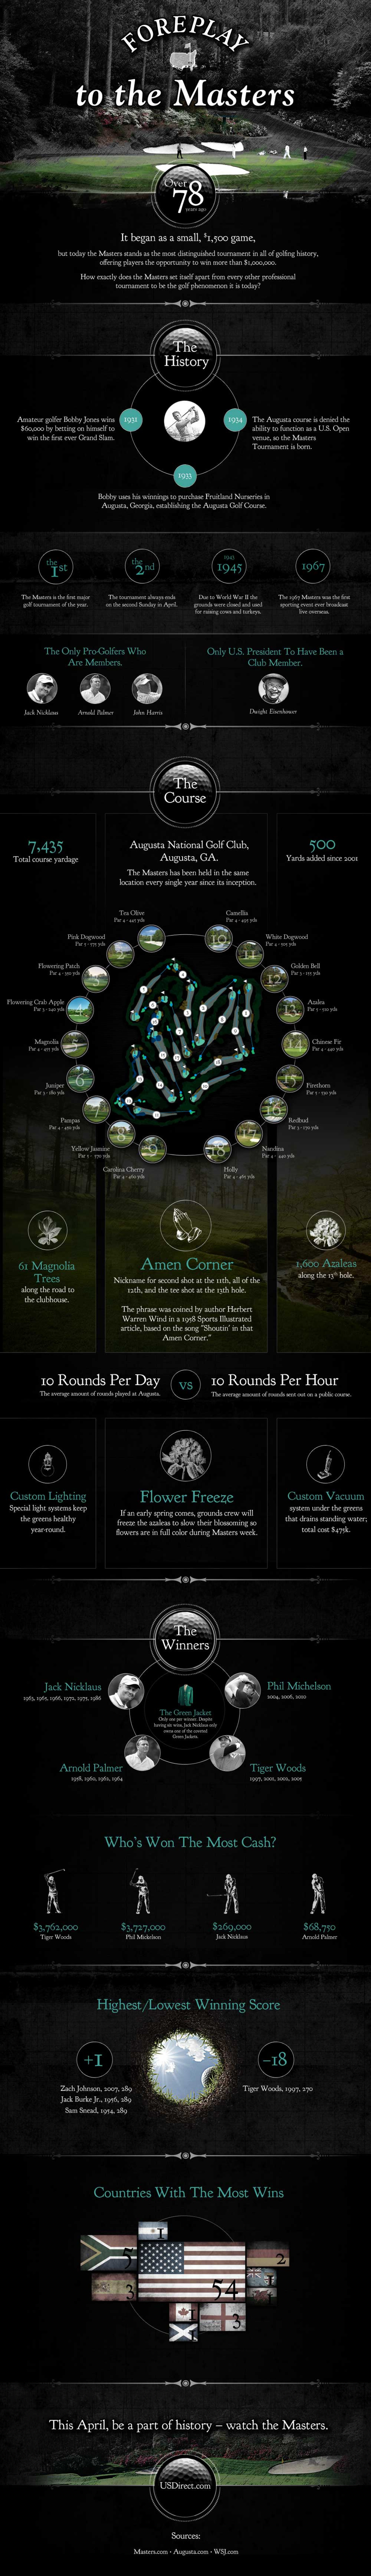 The Masters Tradition  Infographic